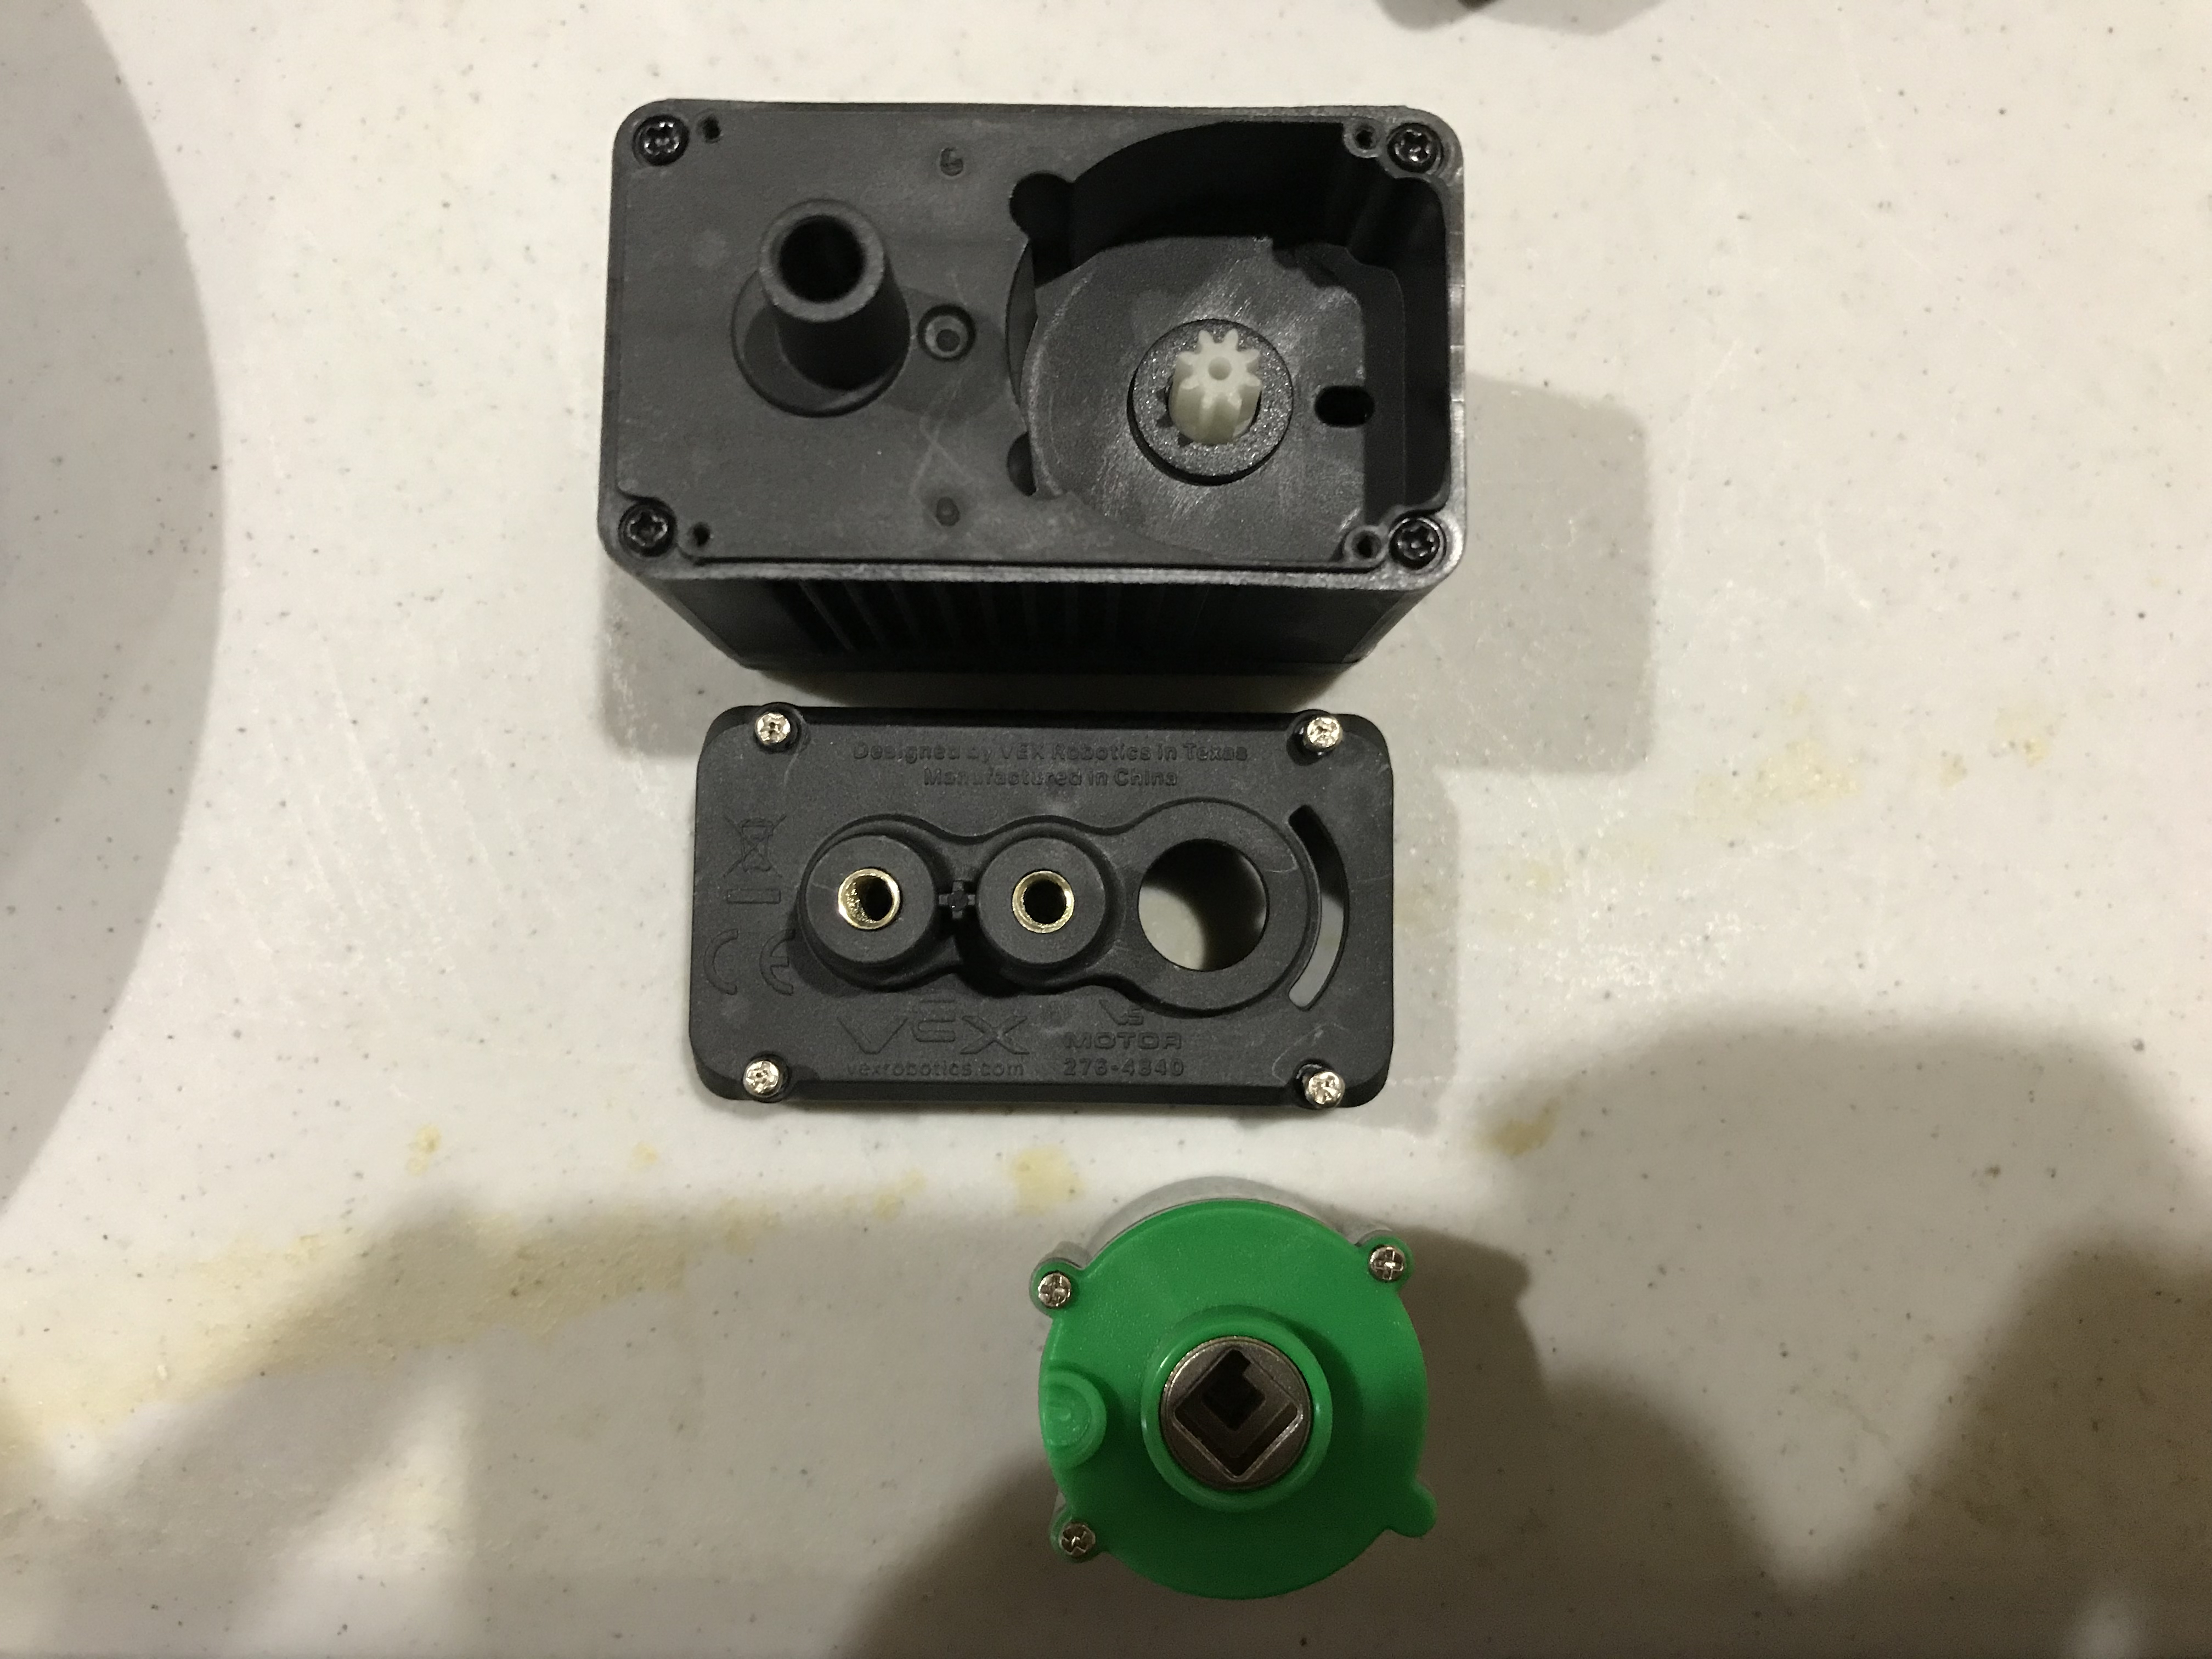 Pictures of Internals of V5 components [WARNING LOTS OF